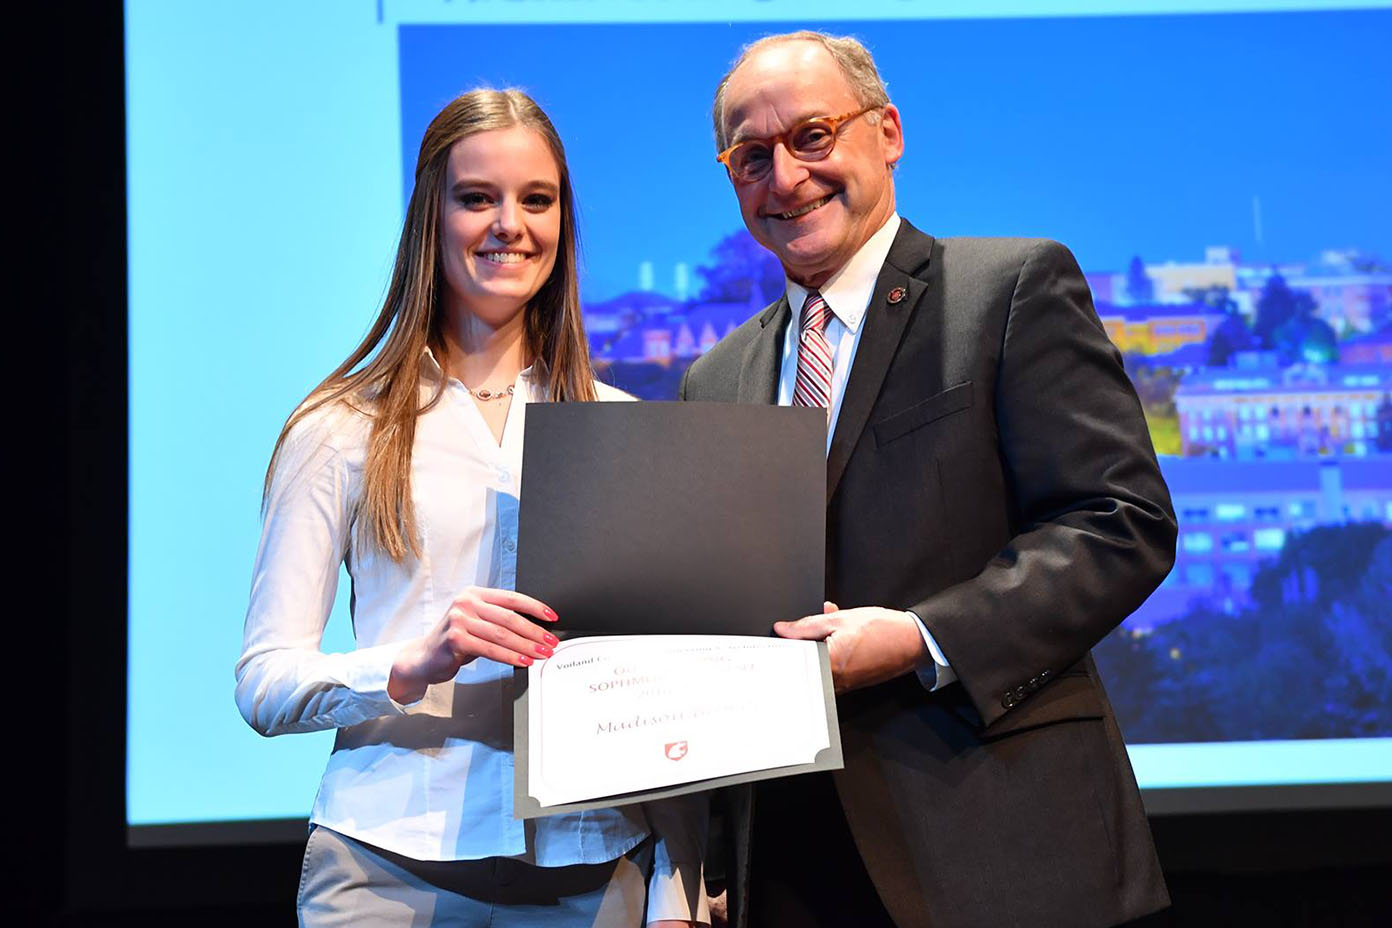 Madison Broers stands next to Don Bender holding her award.